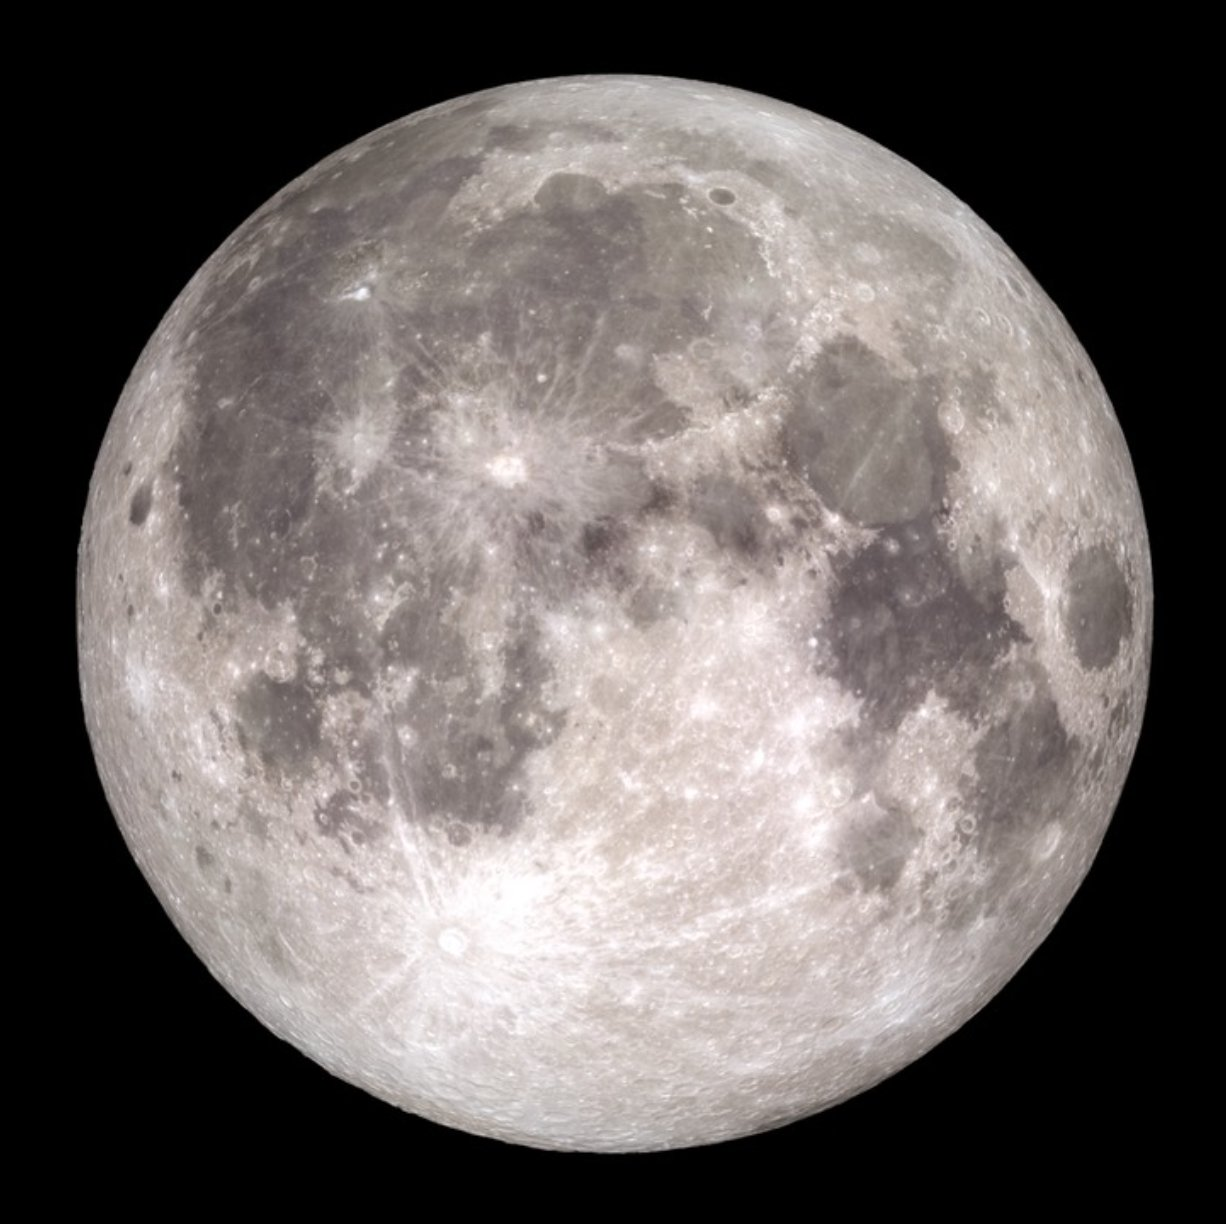 Supermoon Photos The Closest Full Moon Until in Pictures